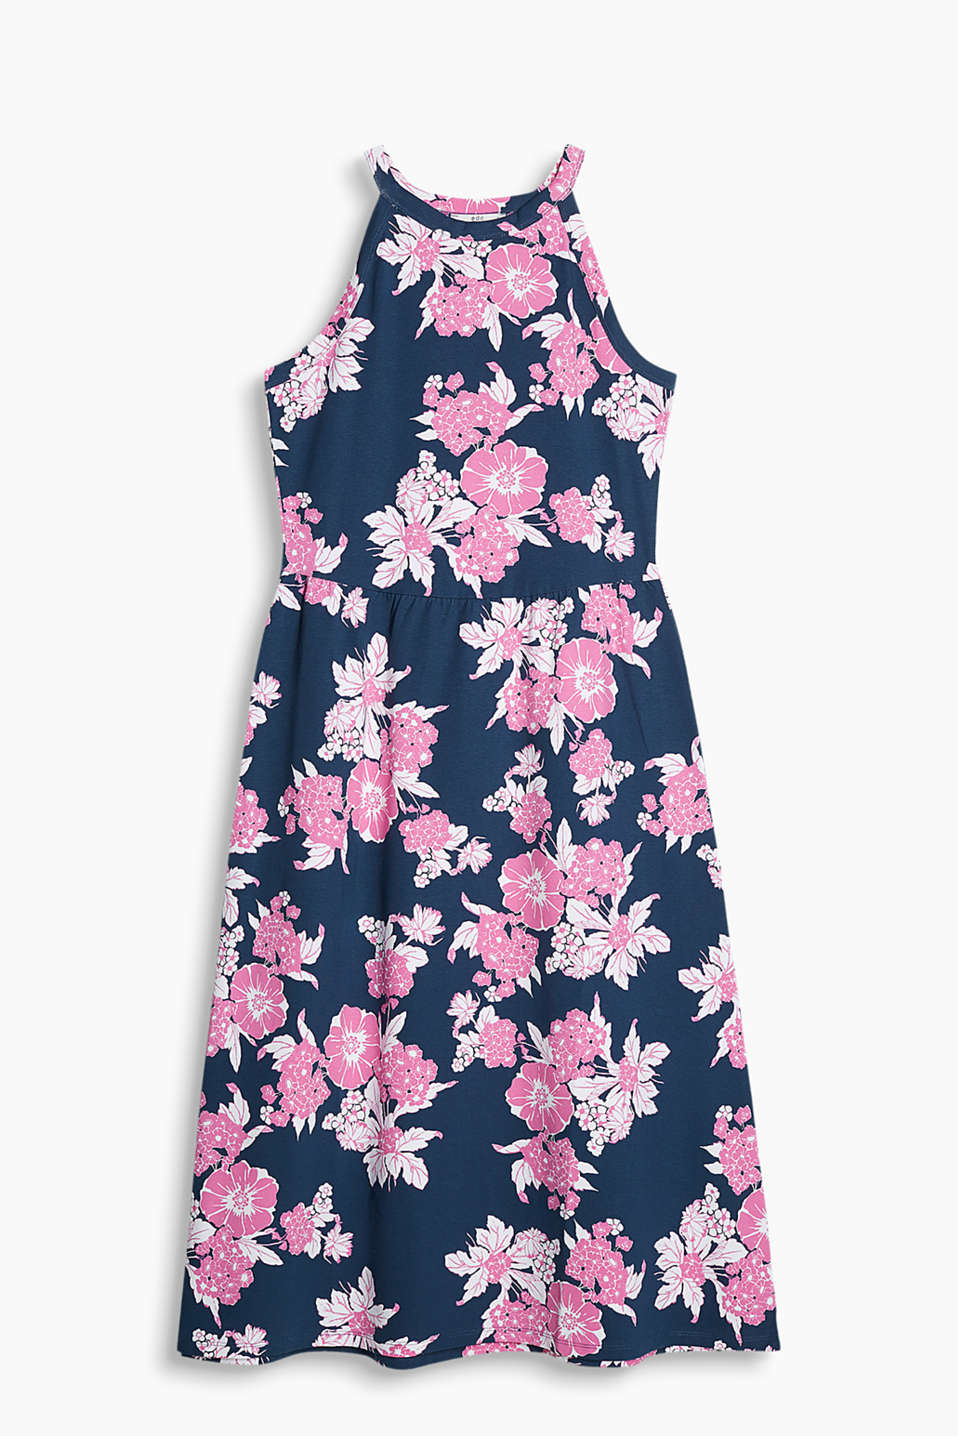 Flared A-line jersey dress in stretch cotton with an elaborate floral design